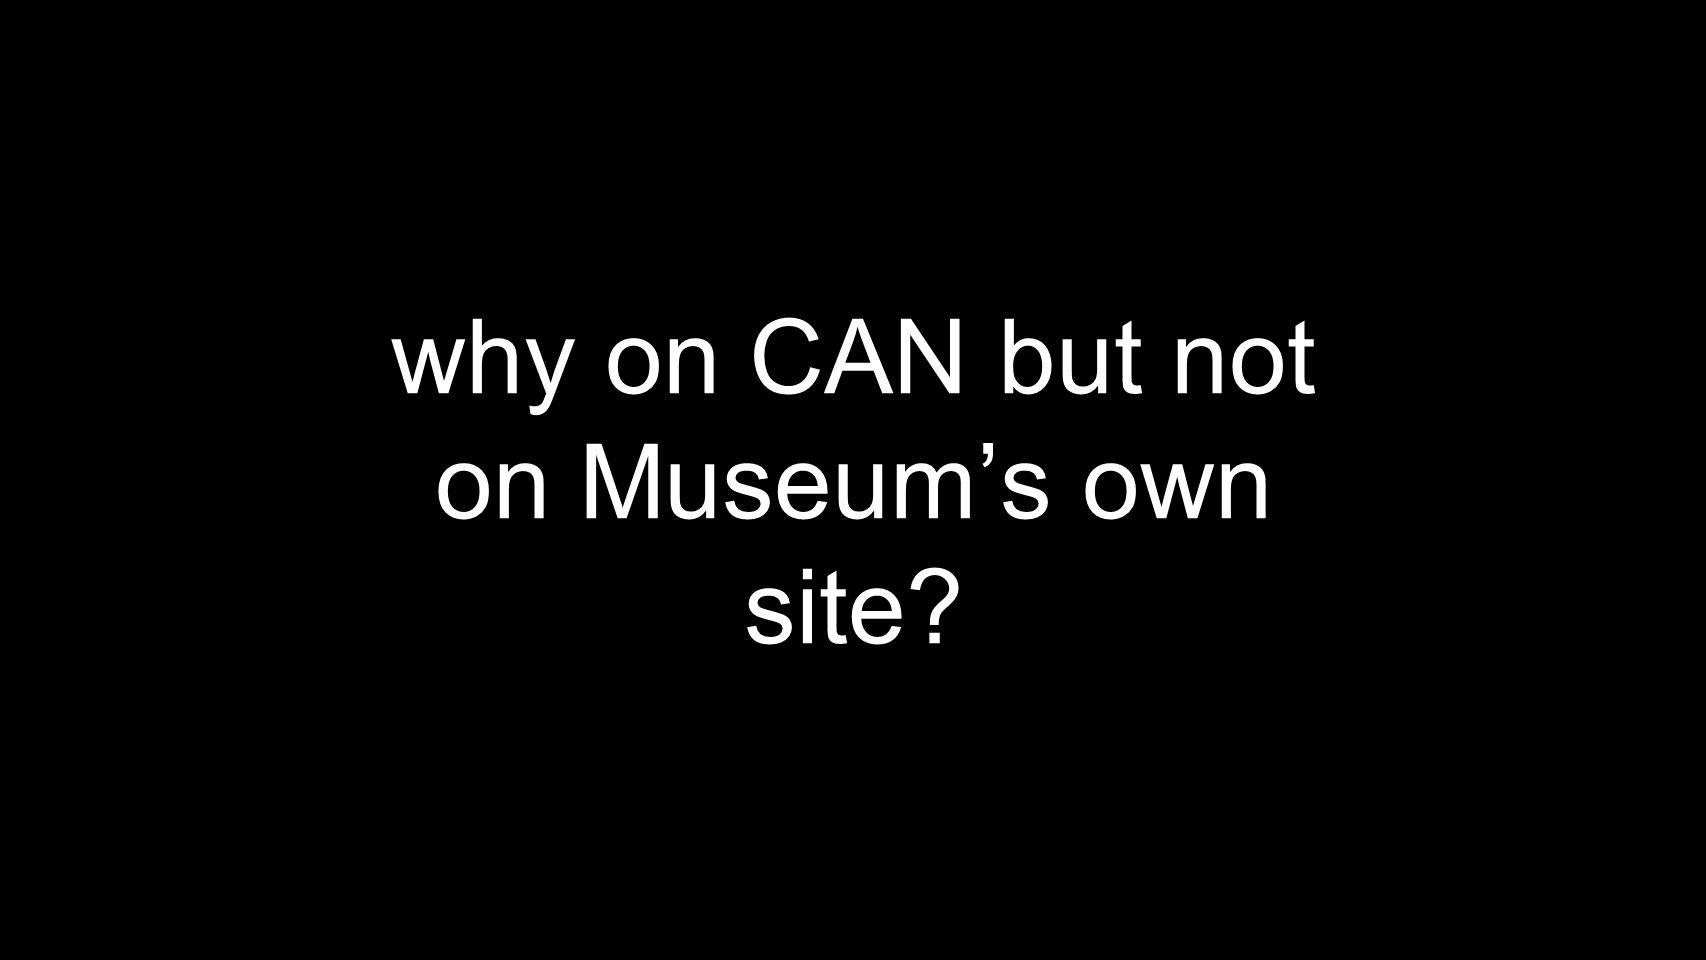 why on CAN but not on Museum's own site?